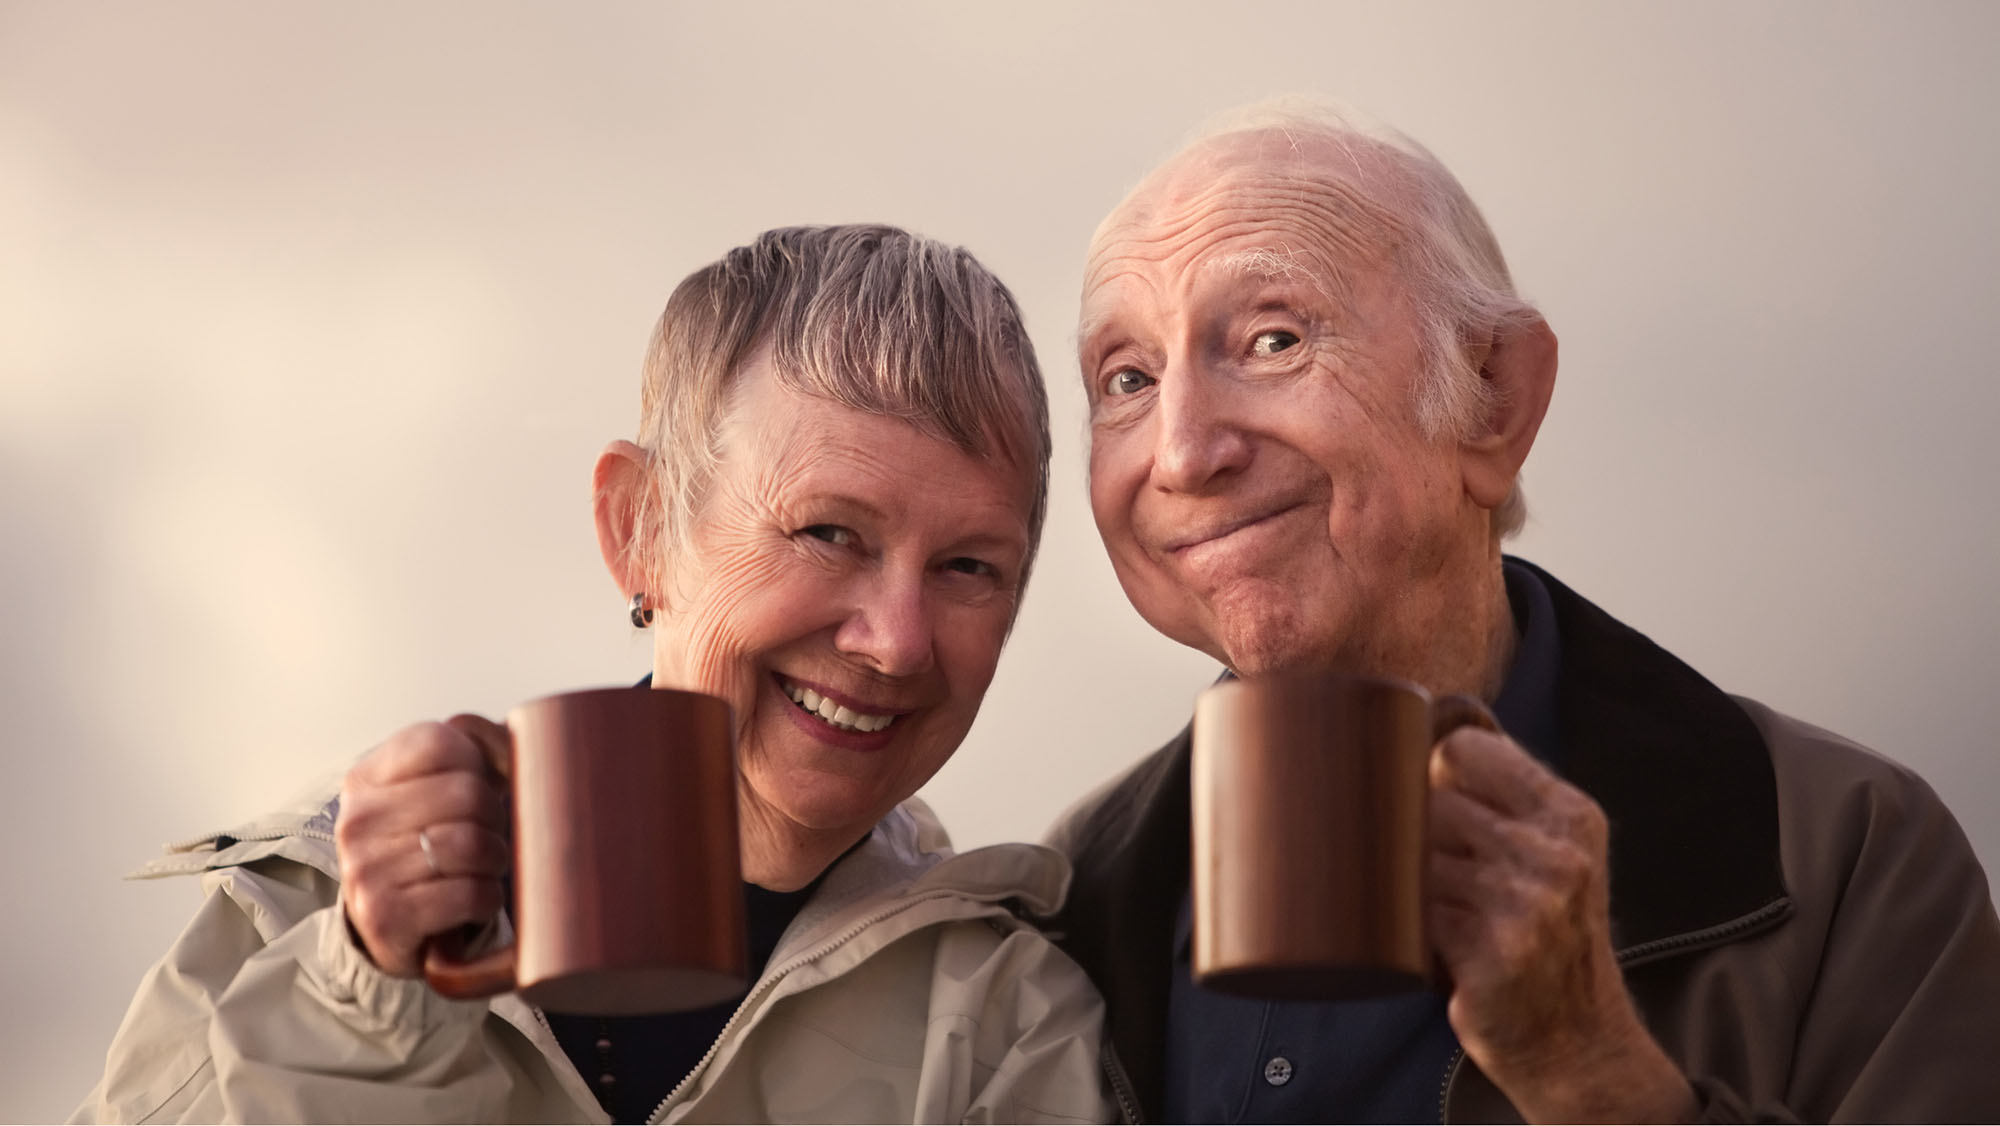 A cup of coffee is good for stress, depression and memory loss